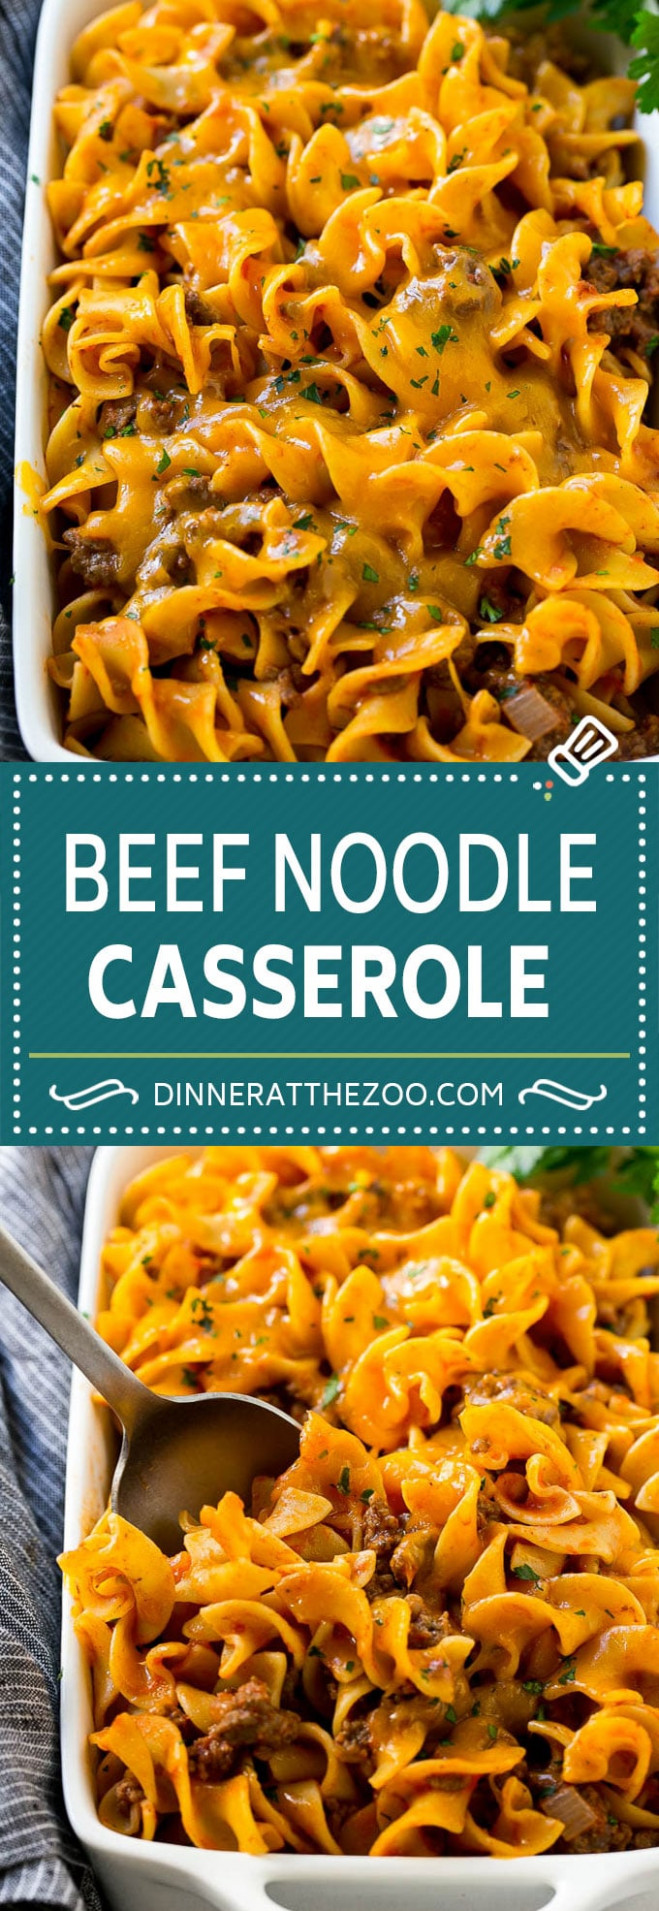 Beef Noodle Casserole - Dinner at the Zoo - dinner recipes hamburger